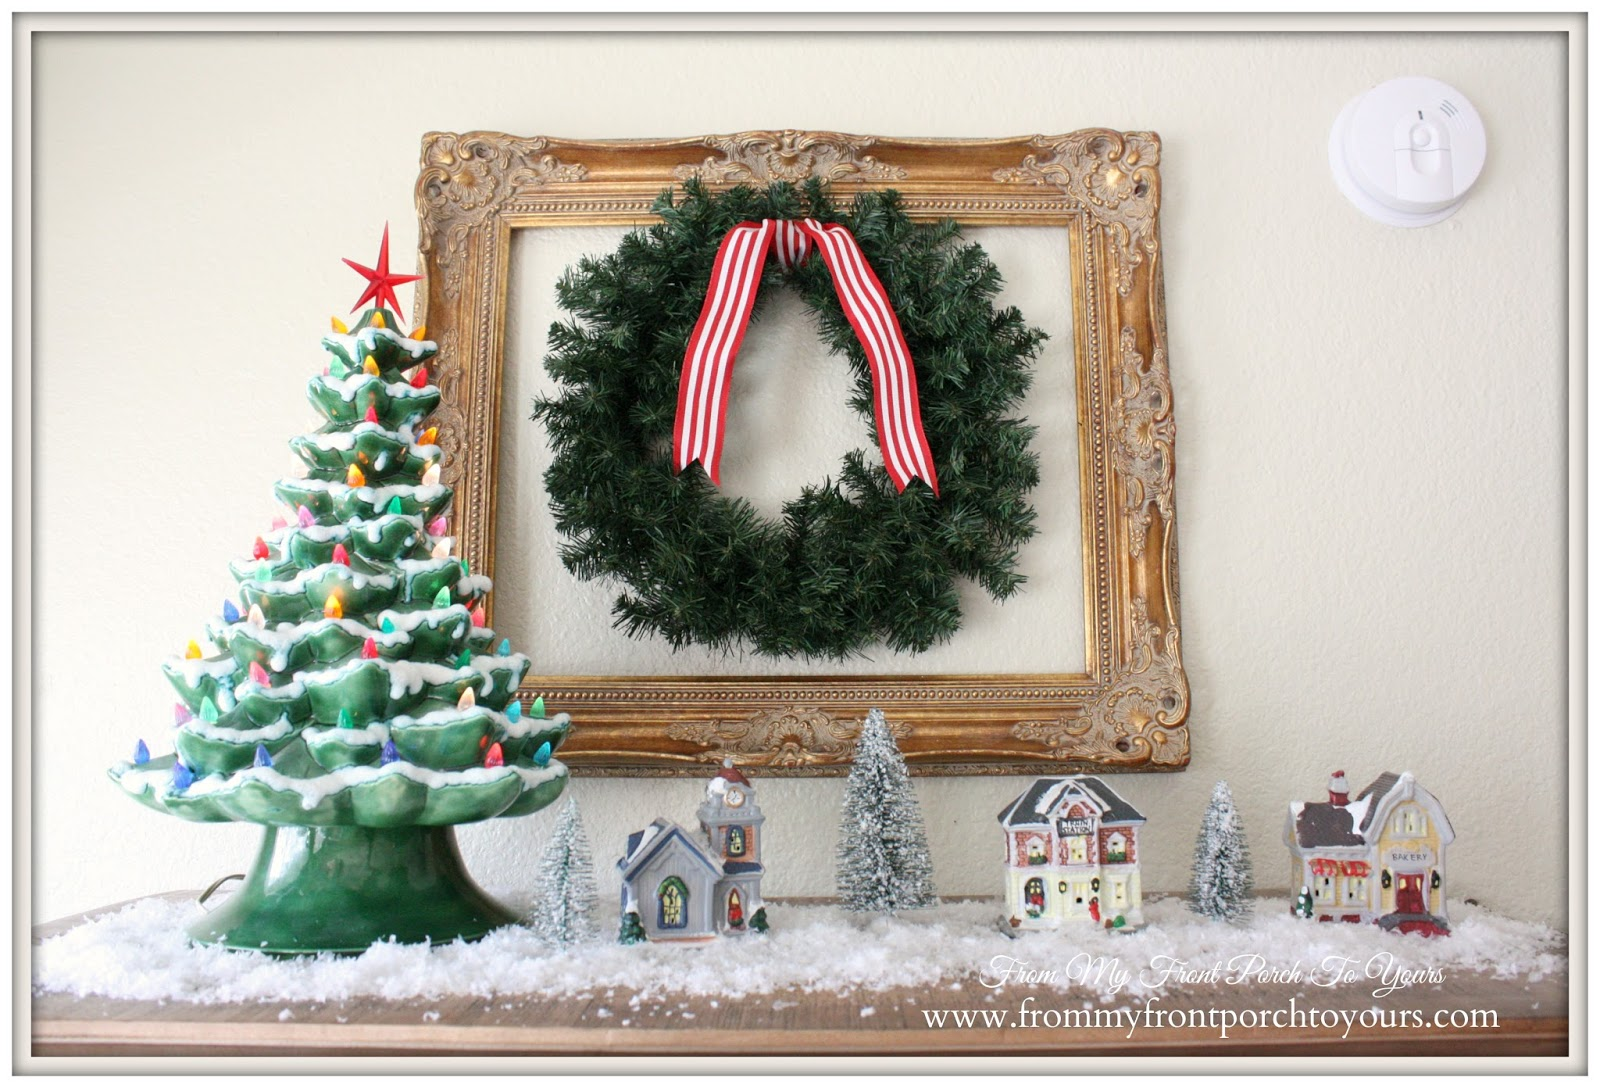 Trending Vintage Ceramic Christmas Trees East Meets South